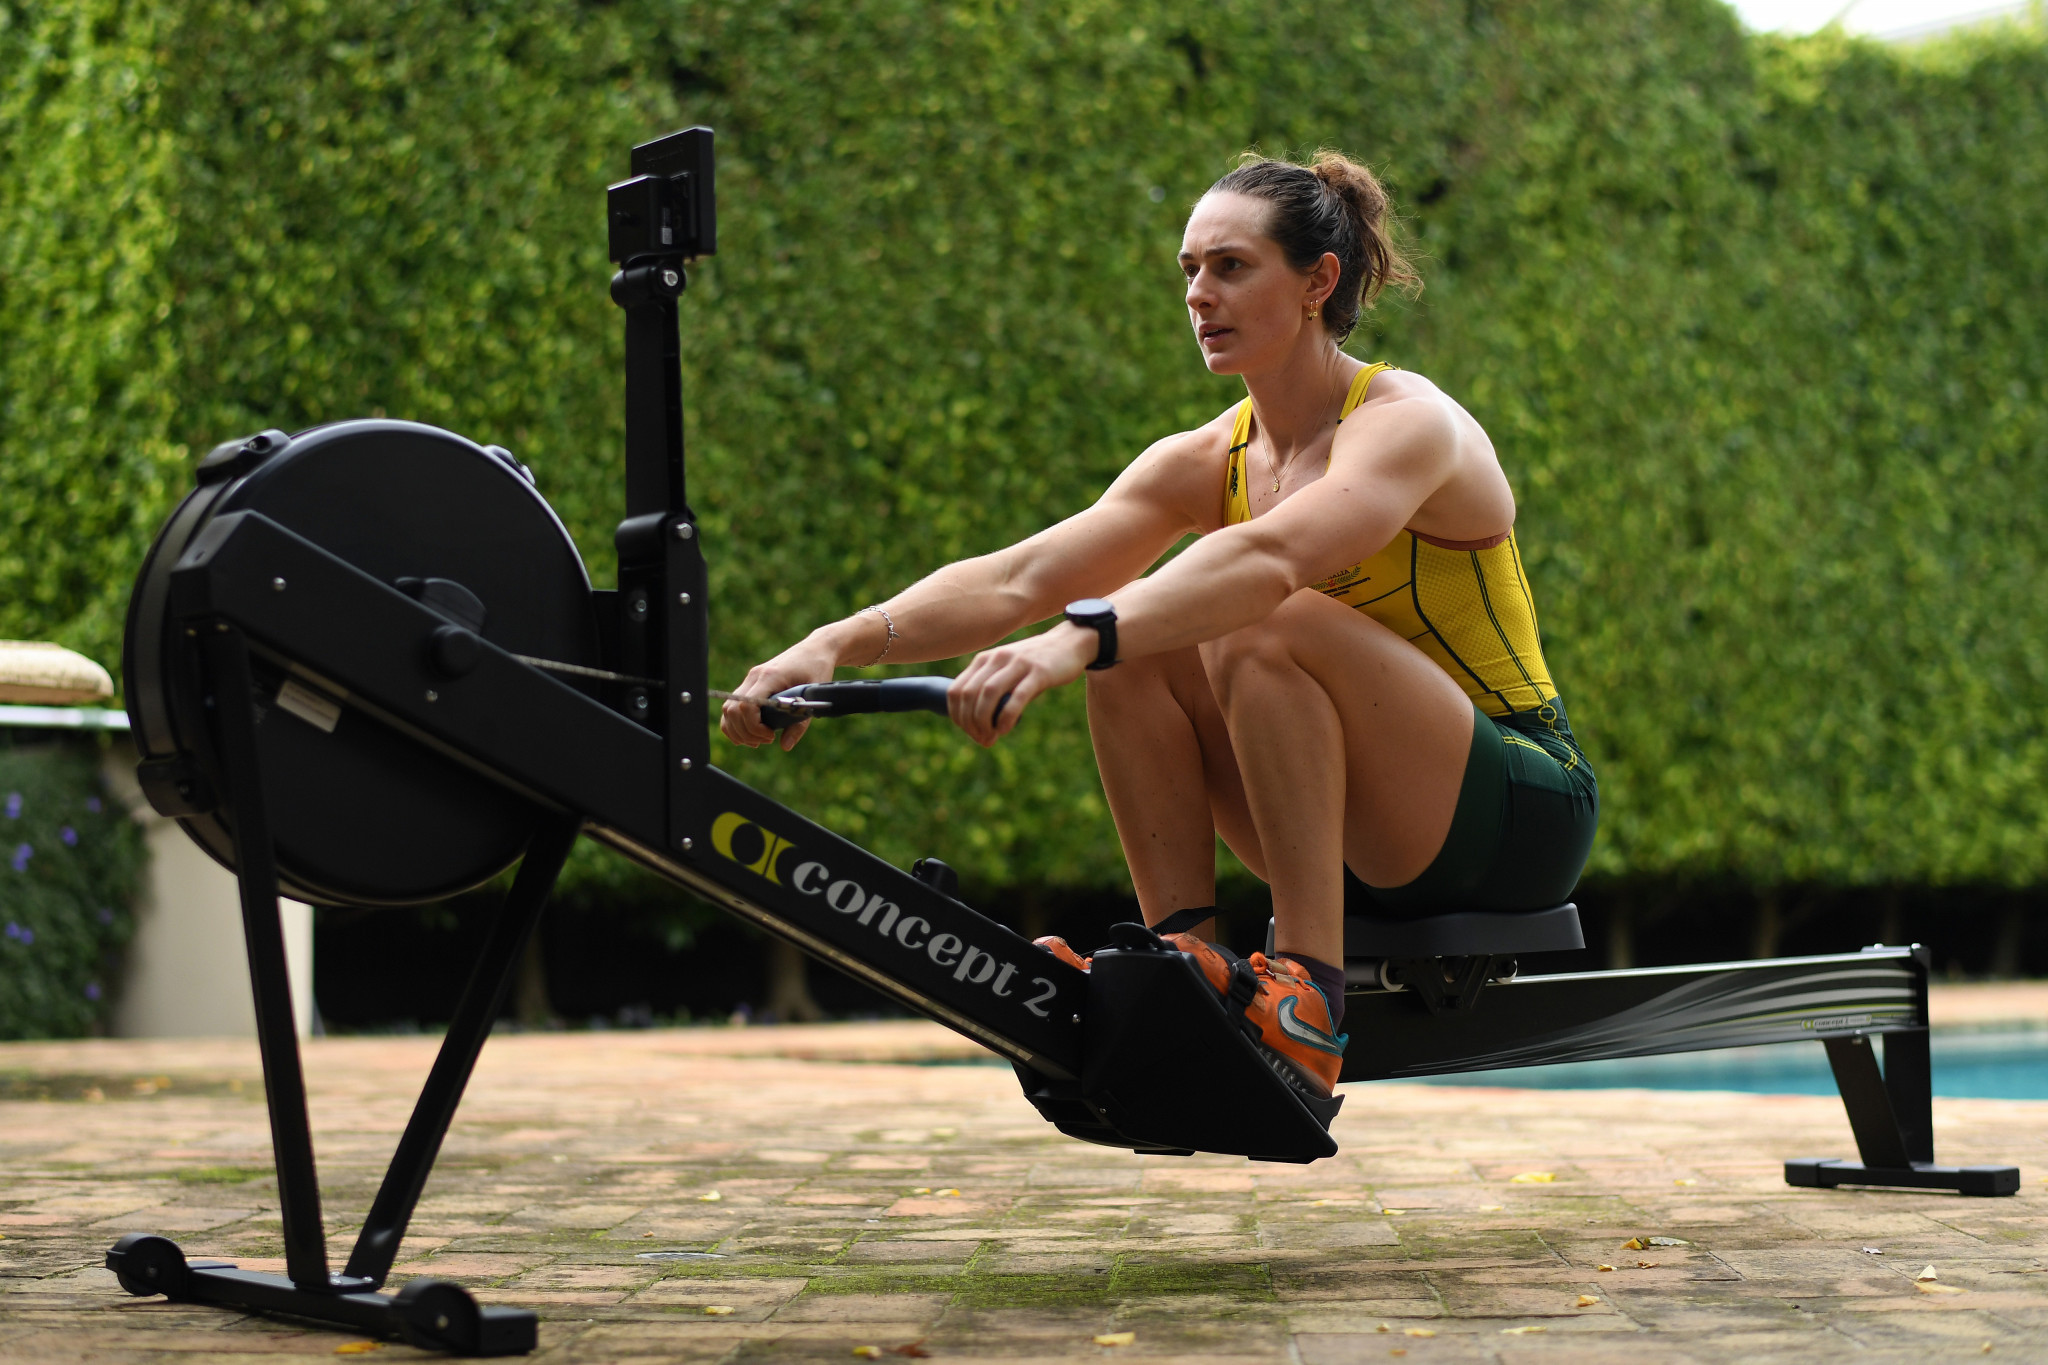 Europe and Oceania set for World Rowing Indoor Championships qualifiers